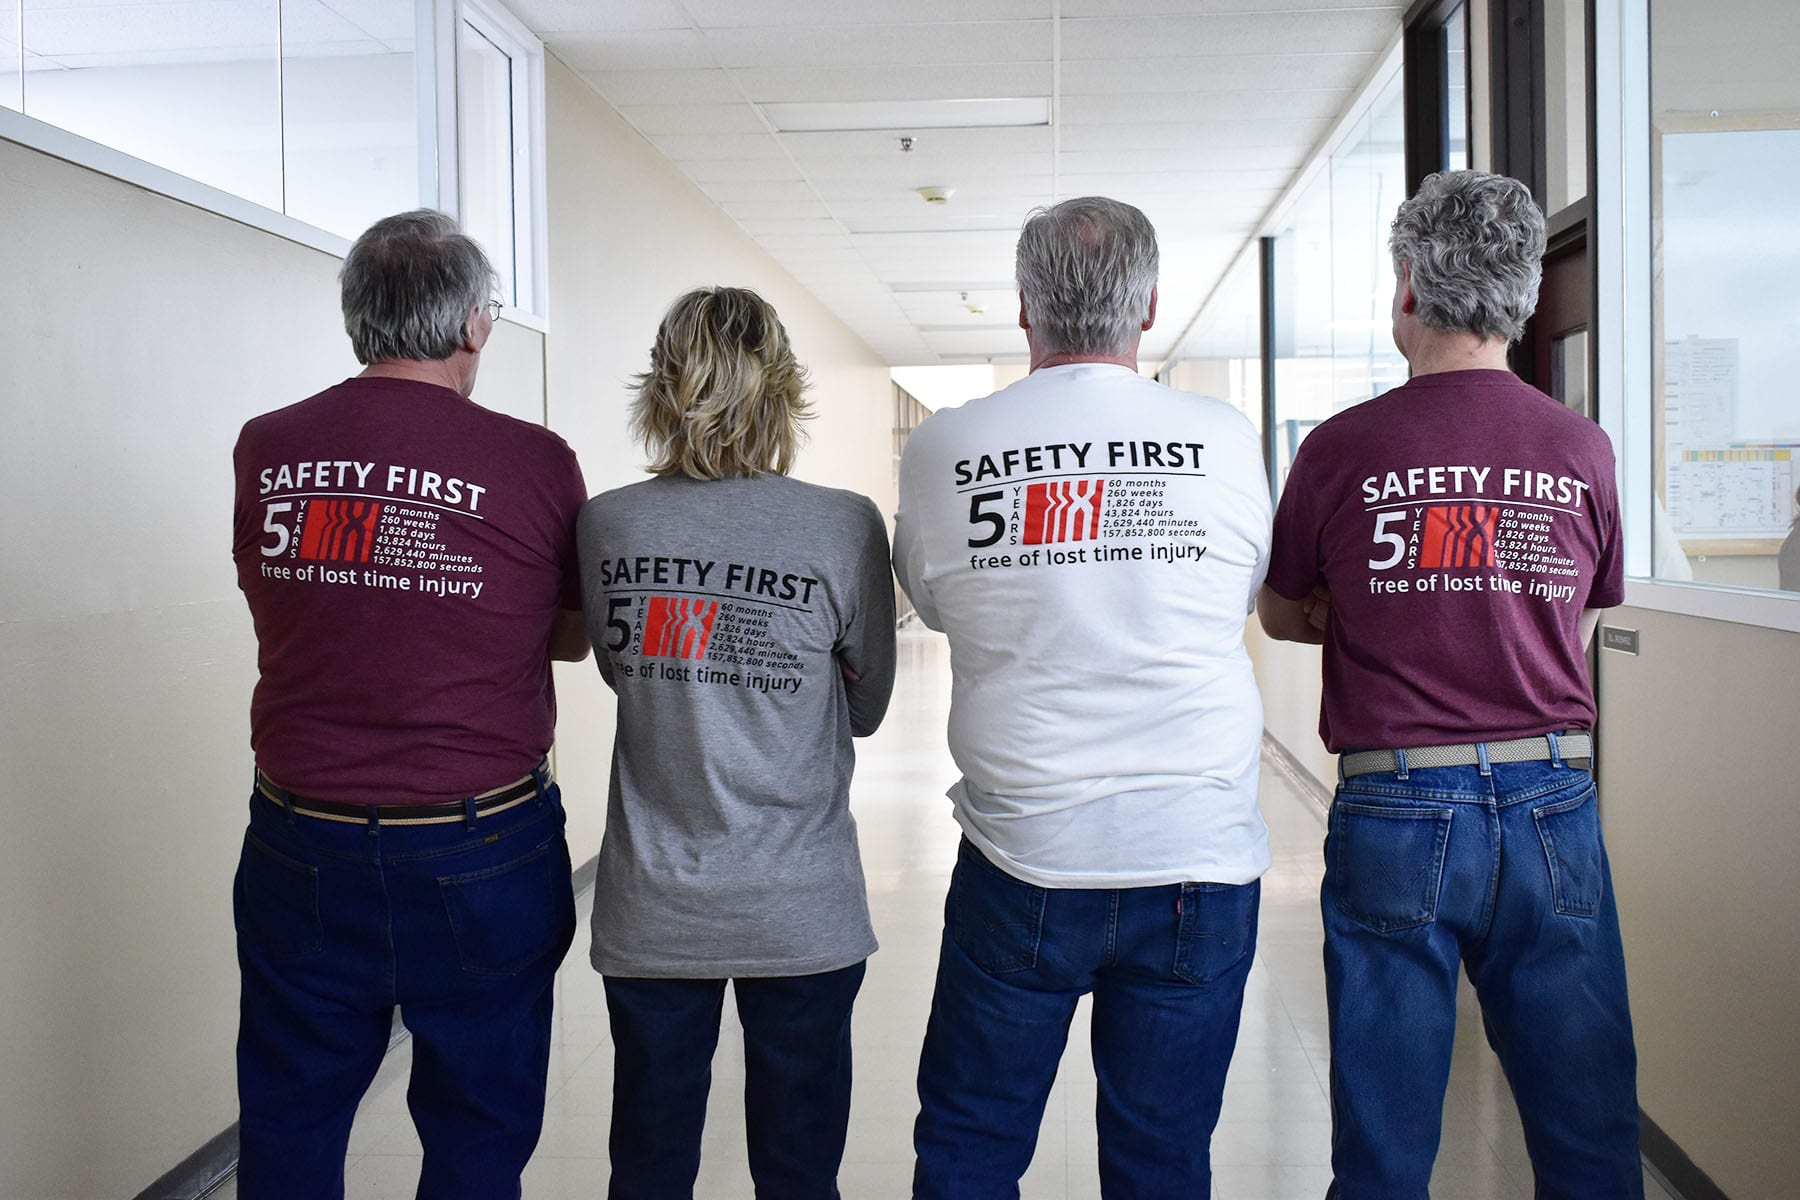 Safety First Shirts